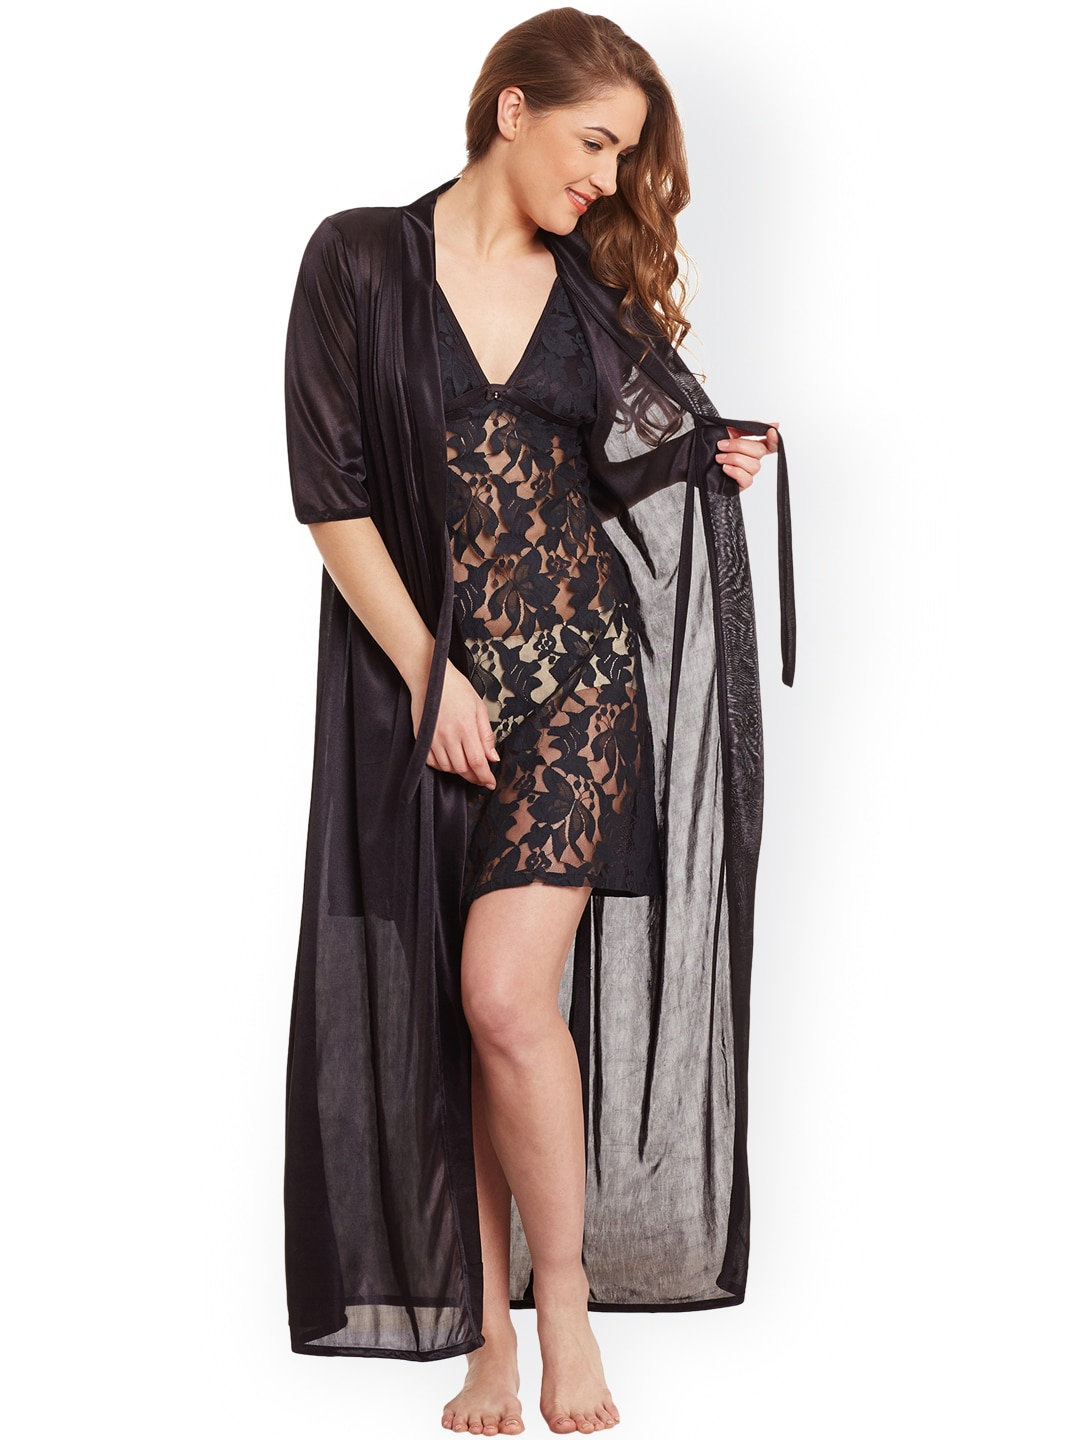 c99328052e6 Claura Black Lace Satin Nightdress with Robe ST-20